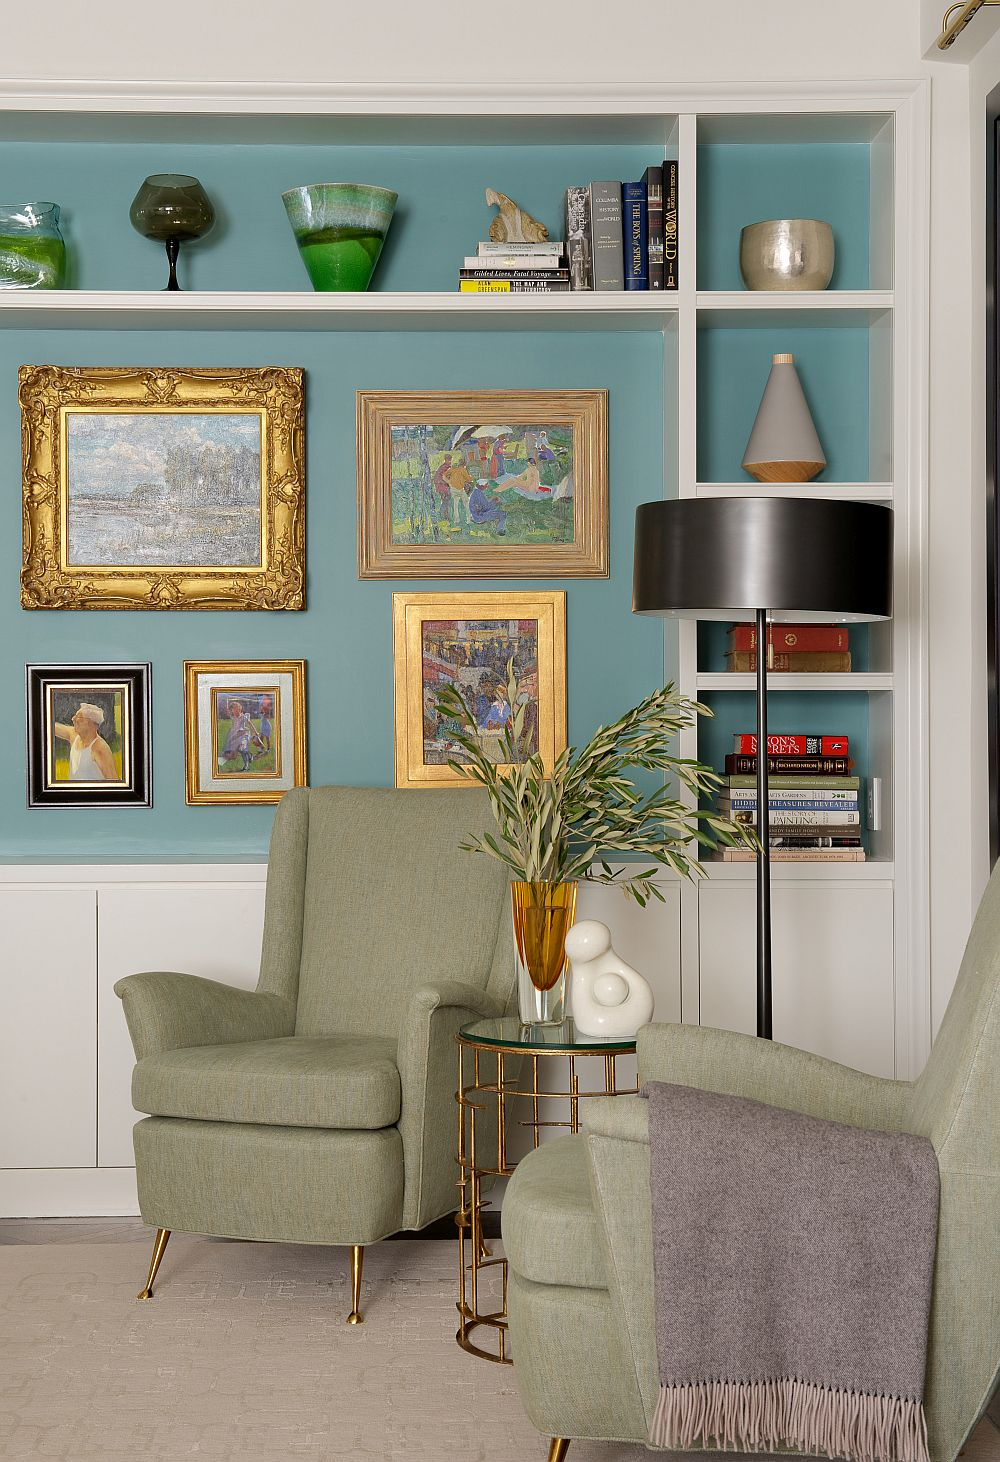 Gallery wall along with floating shelves creates a lovely display